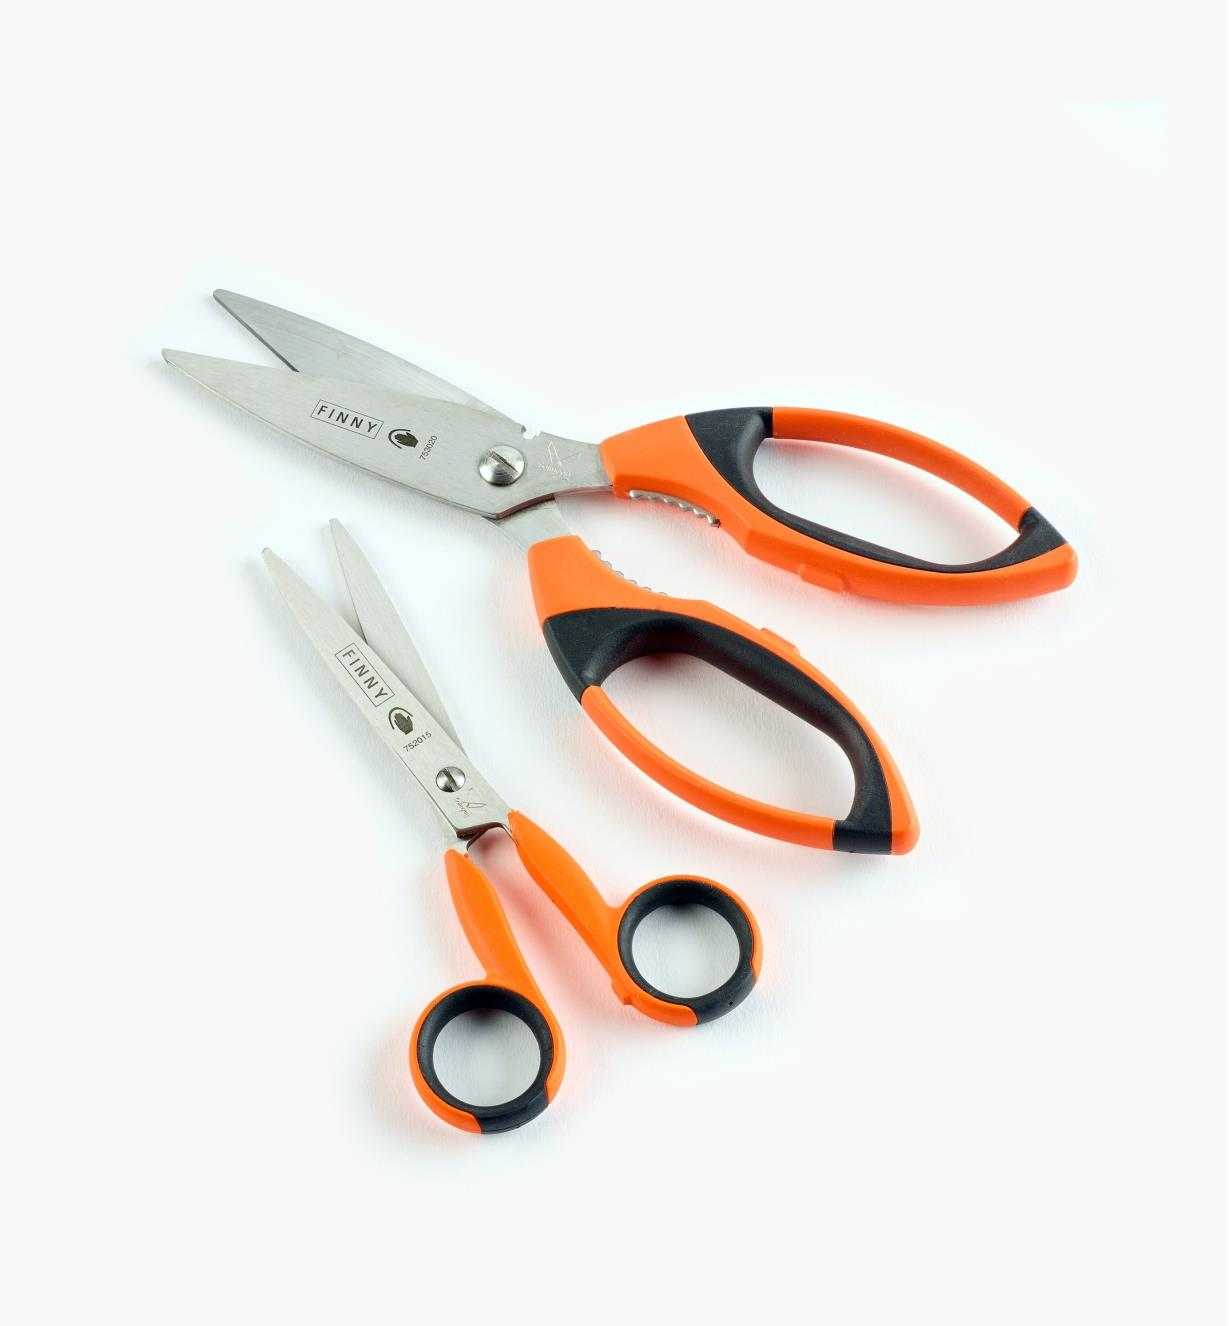 09A0969 -  Safety Scissors, set of 2